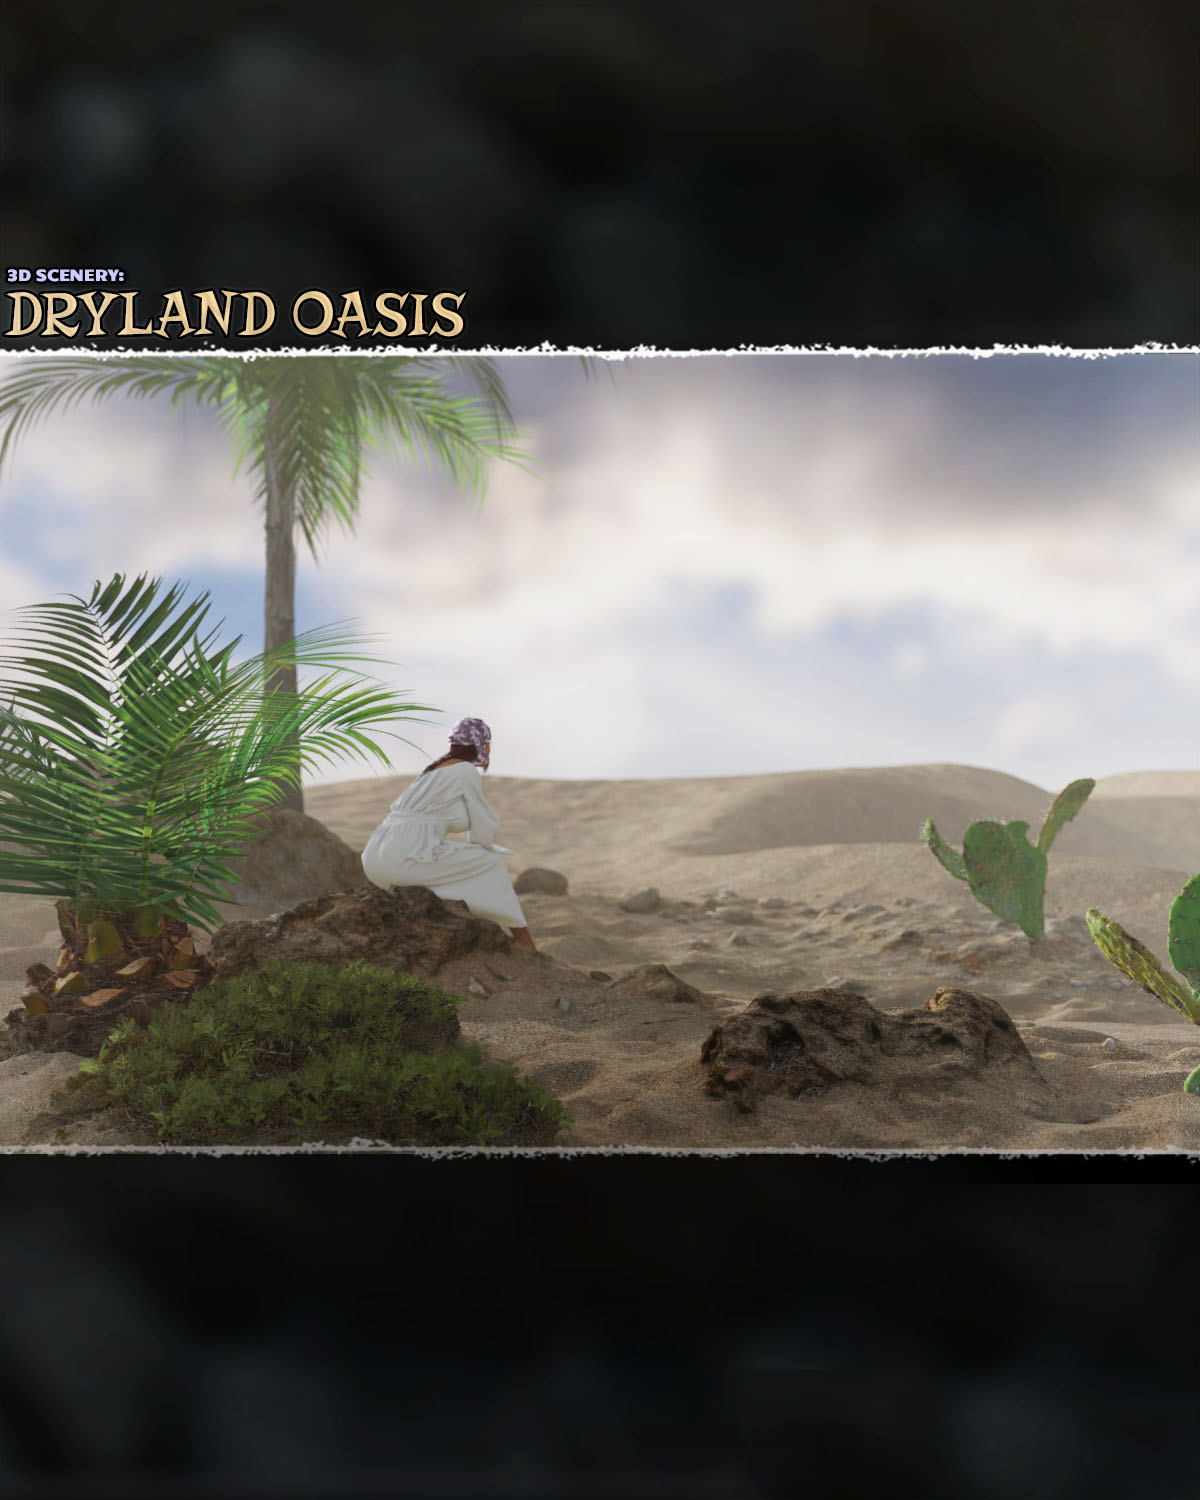 3D Scenery: Dryland Oasis by ShaaraMuse3D